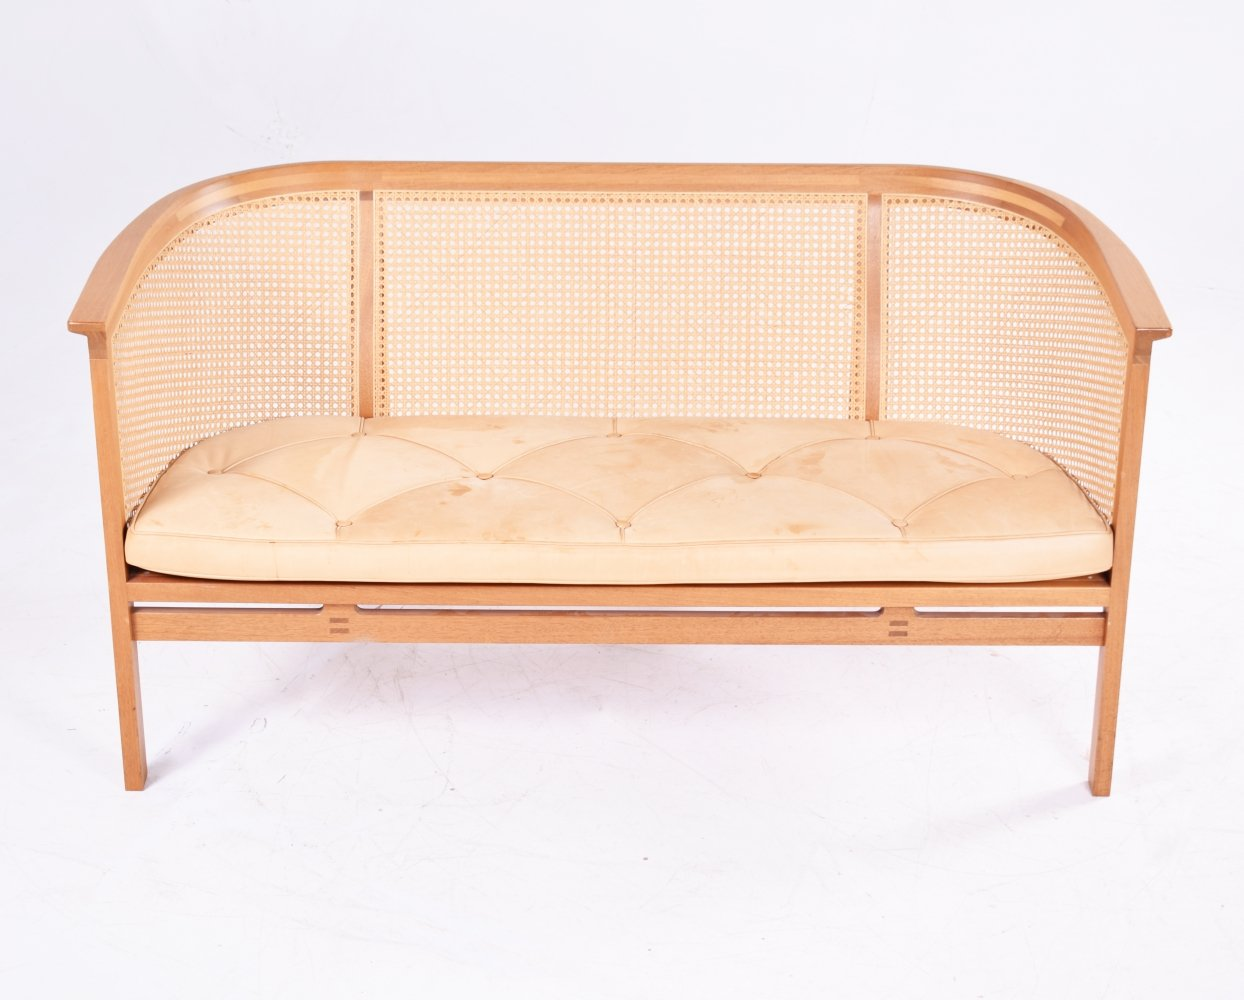 Danish Sofa in Mahogany by Rud Thygesen & Johnny Sorensen for Botium, 1985